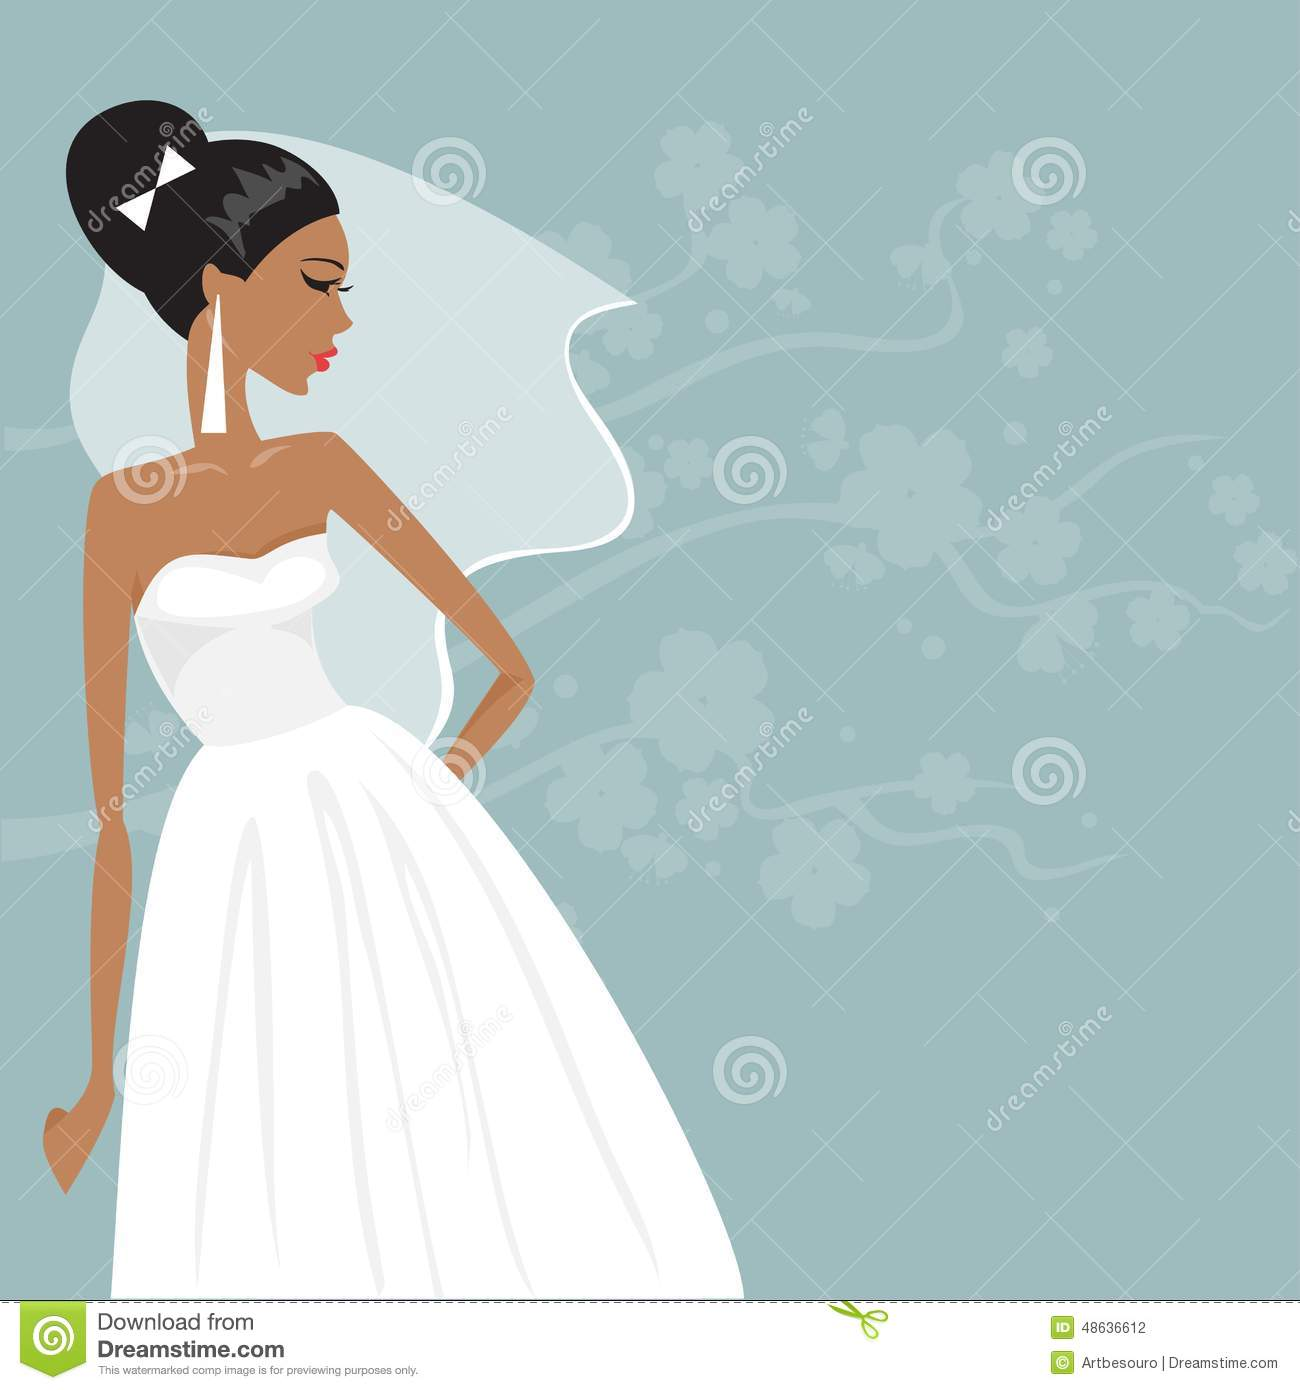 Wedding Gown Illustrations: Beautiful Bride In A Wedding Dress. Vector Illustration